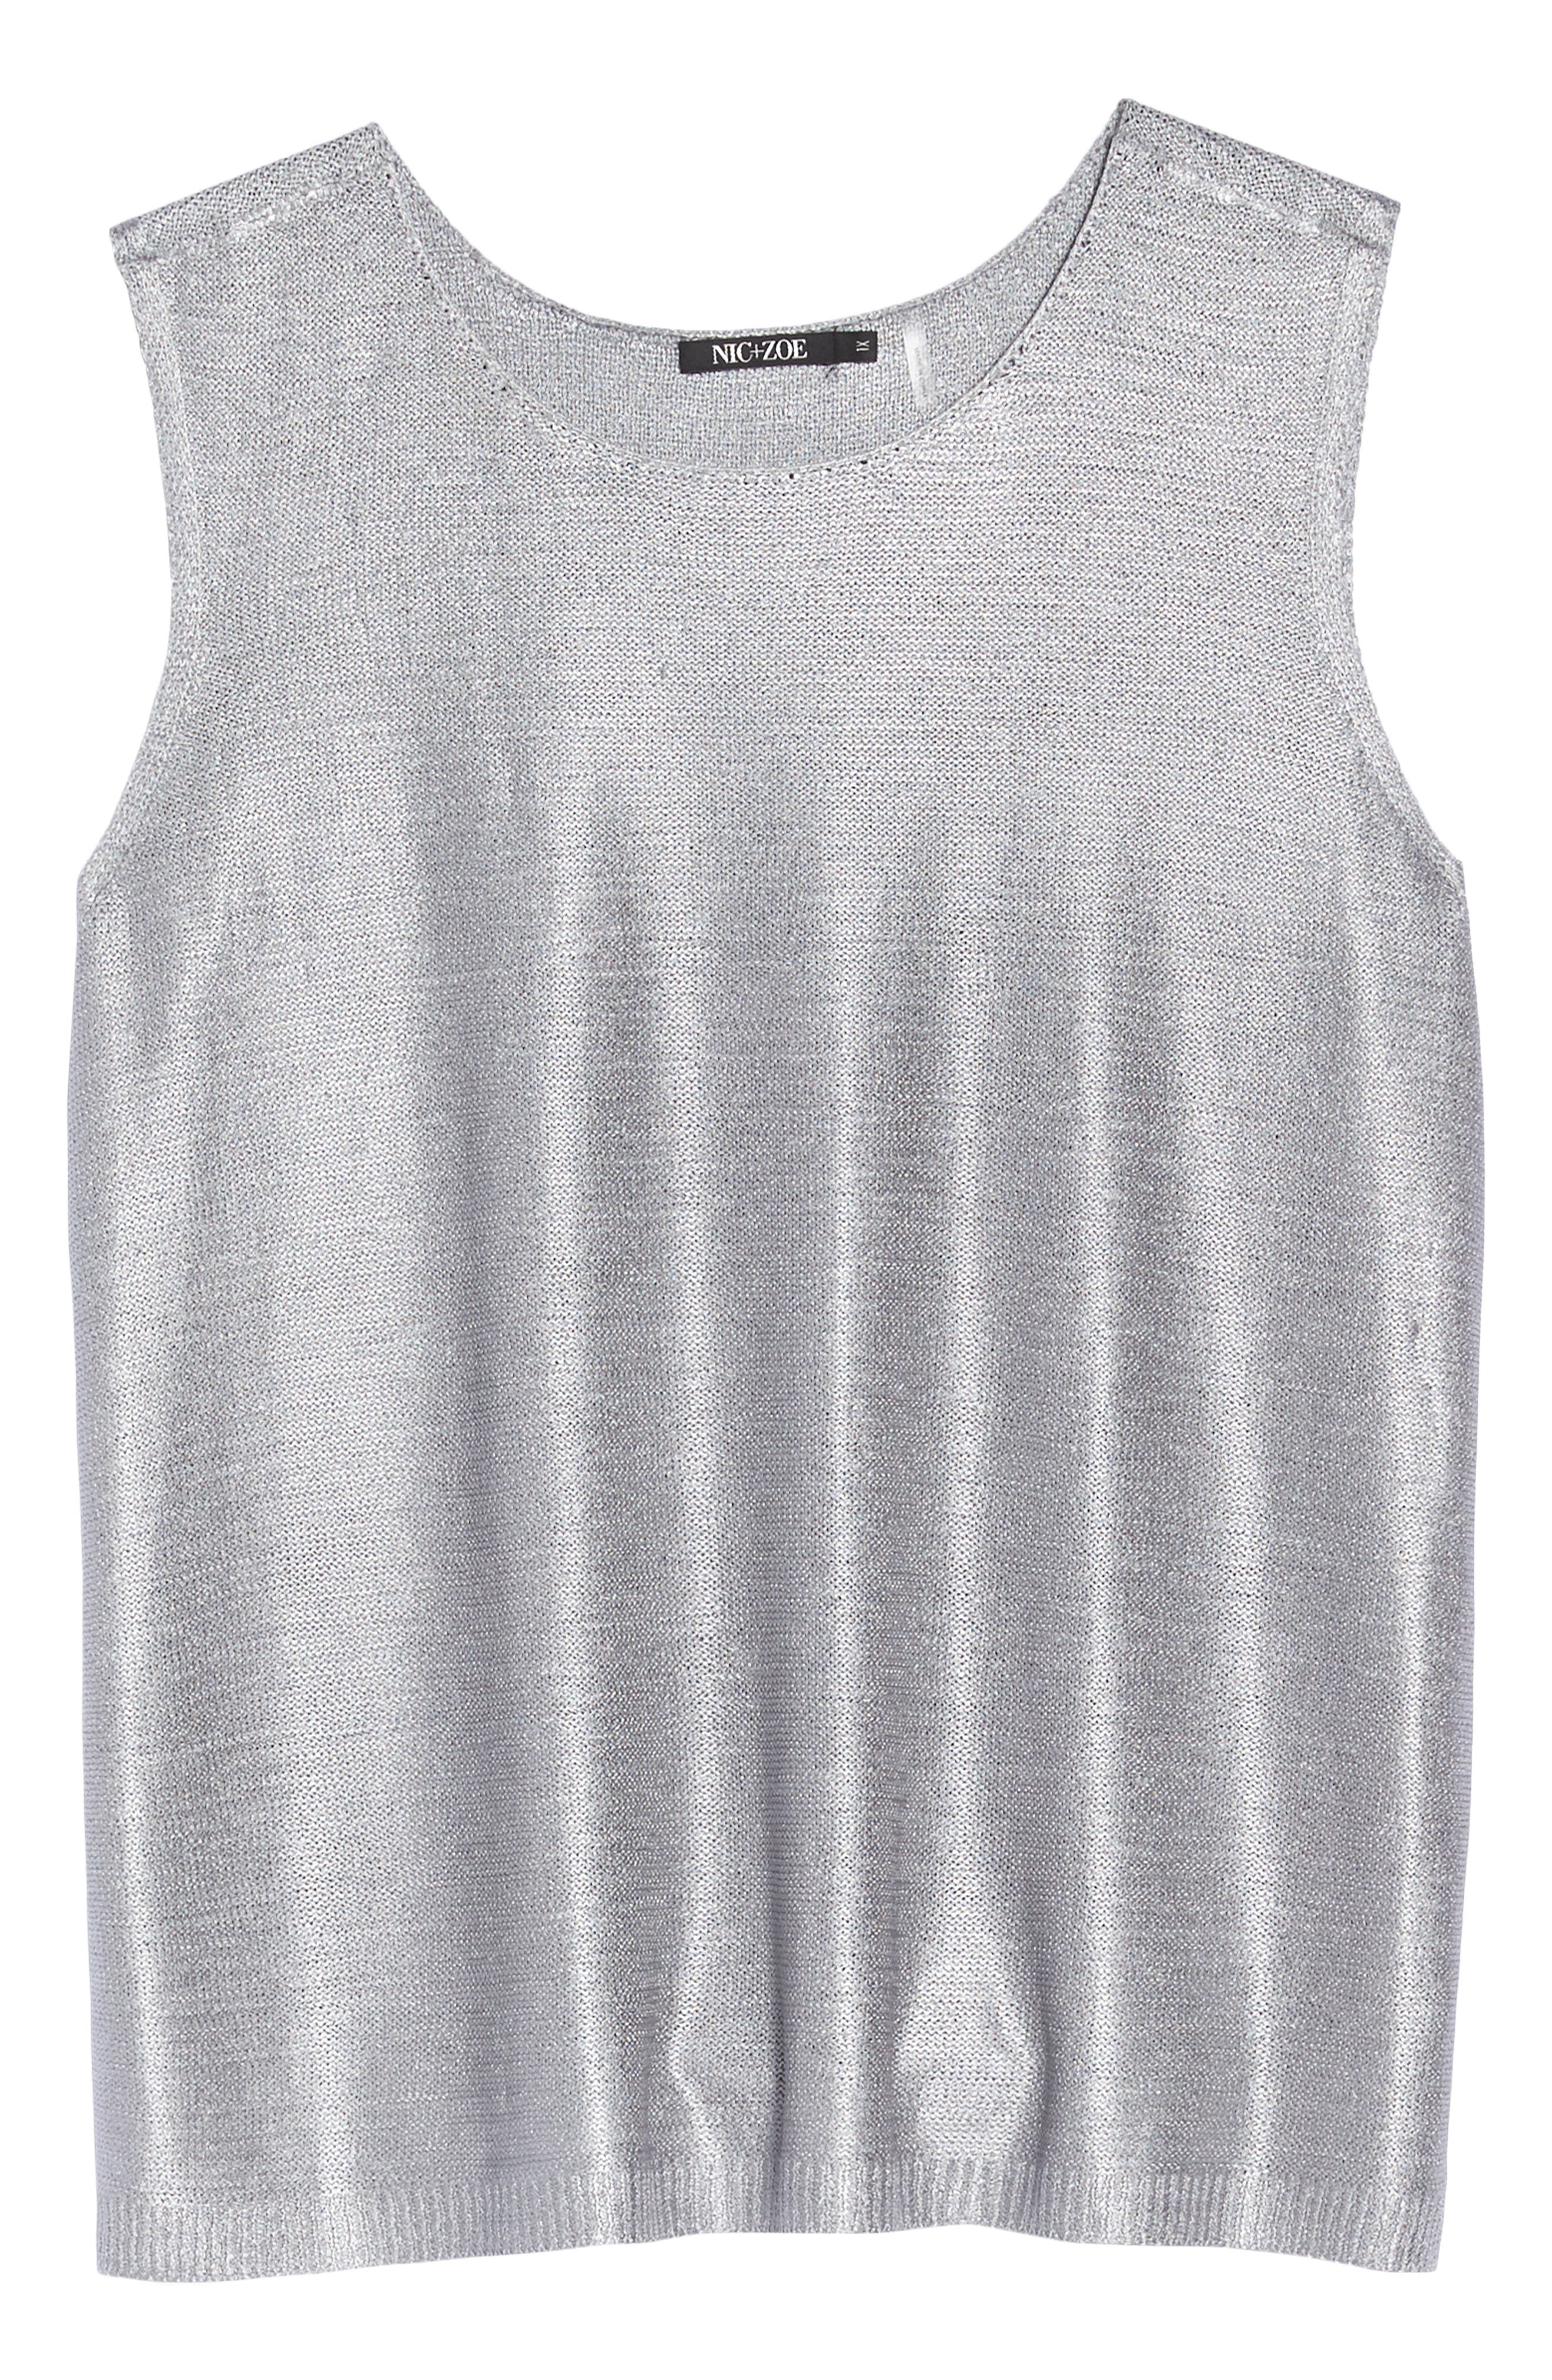 Beach Stone Knit Tank,                             Alternate thumbnail 7, color,                             020